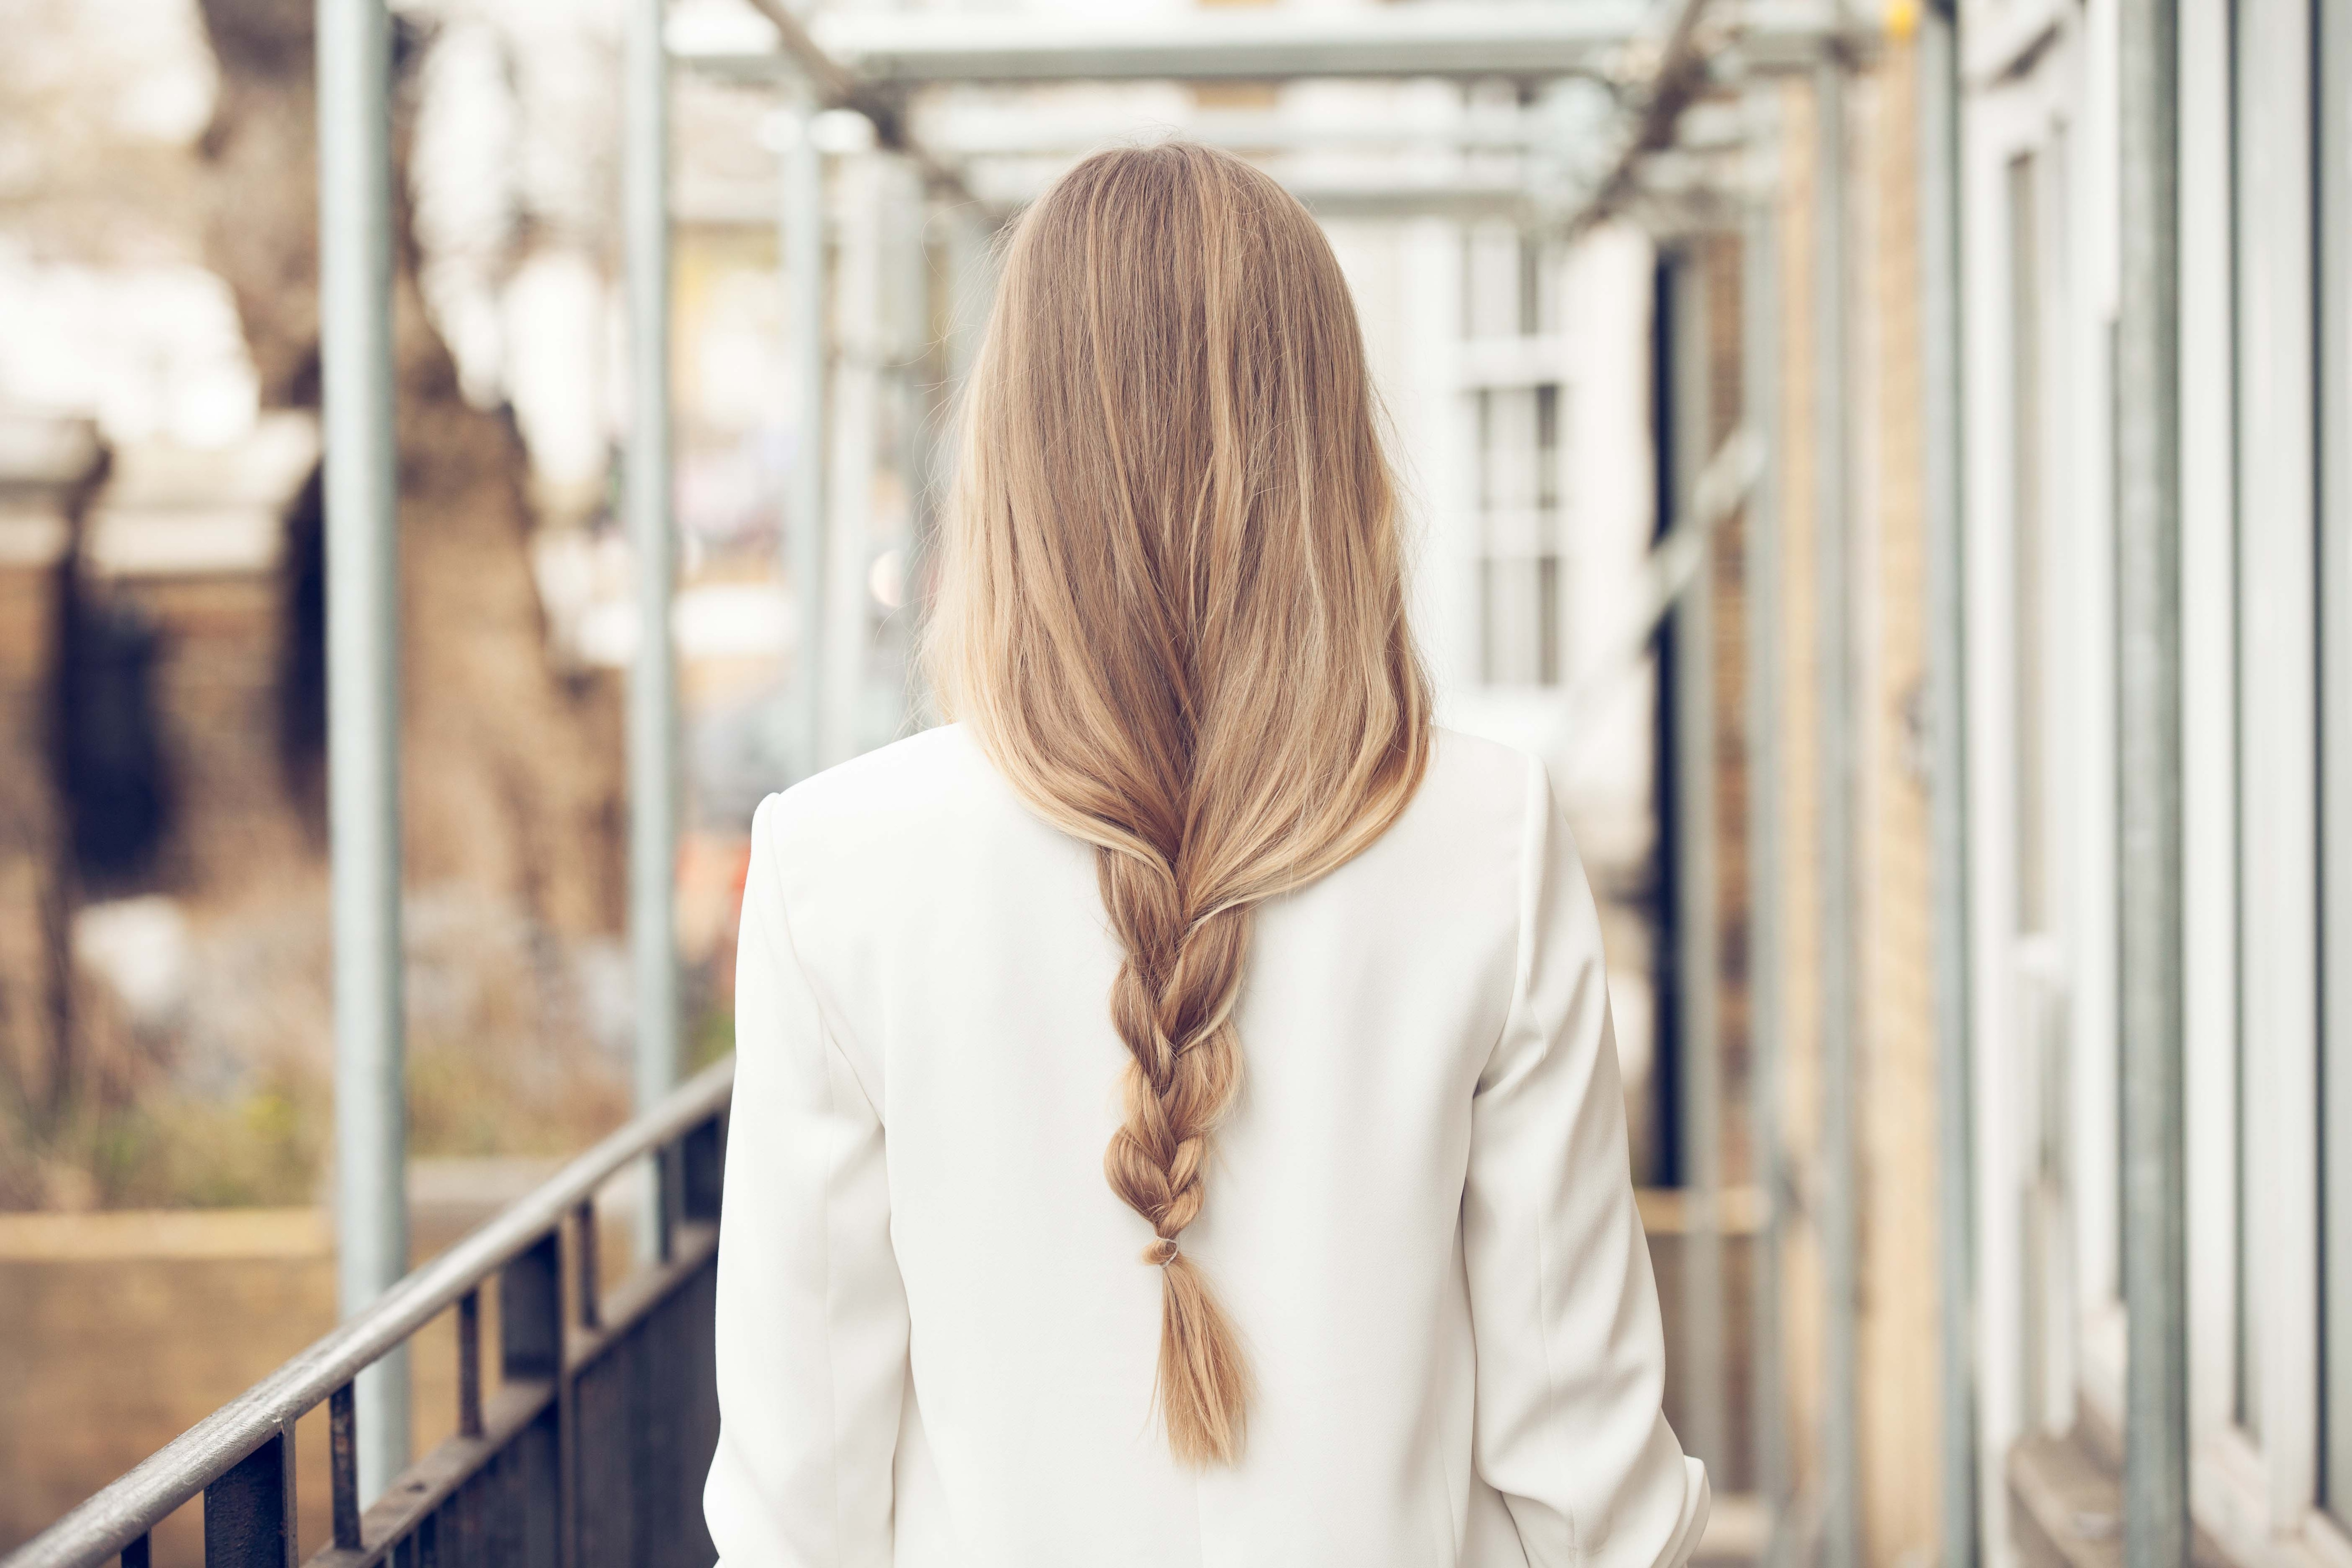 Your complete guide to styling brown hair with blonde highlights